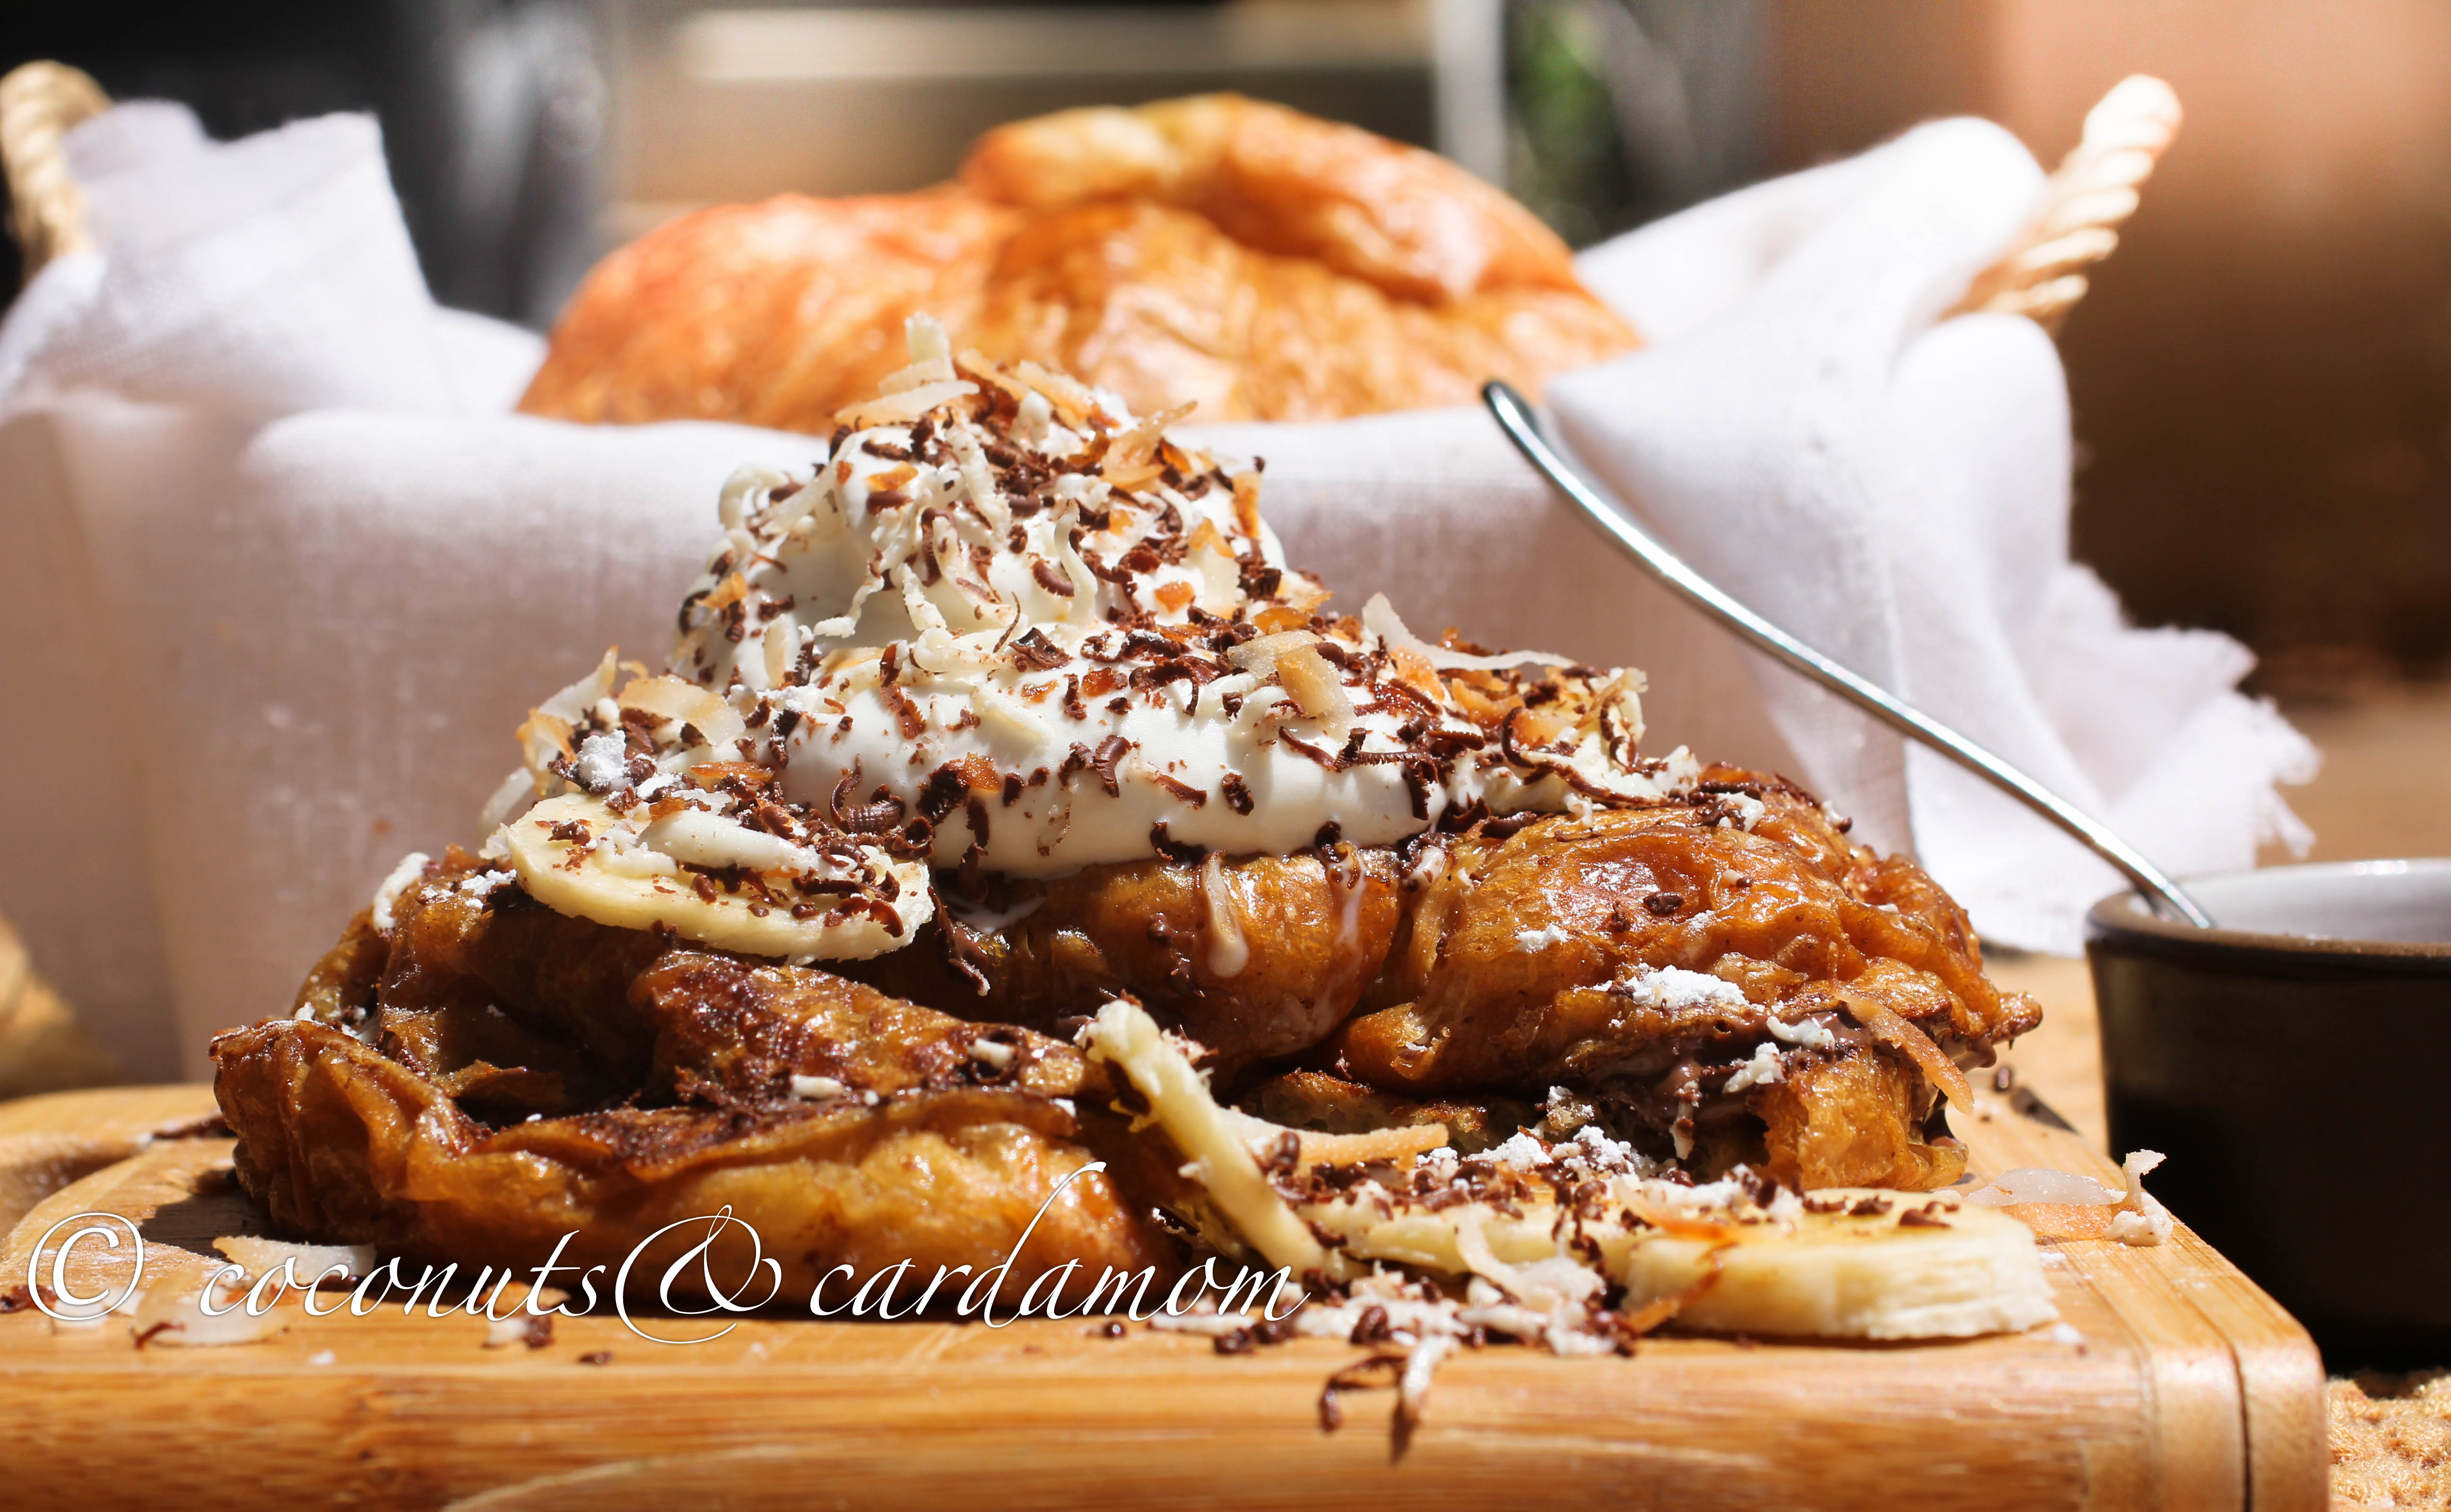 Croissant French Toast Stuffed with Nutella and Topped with Coconut &amp; Banana